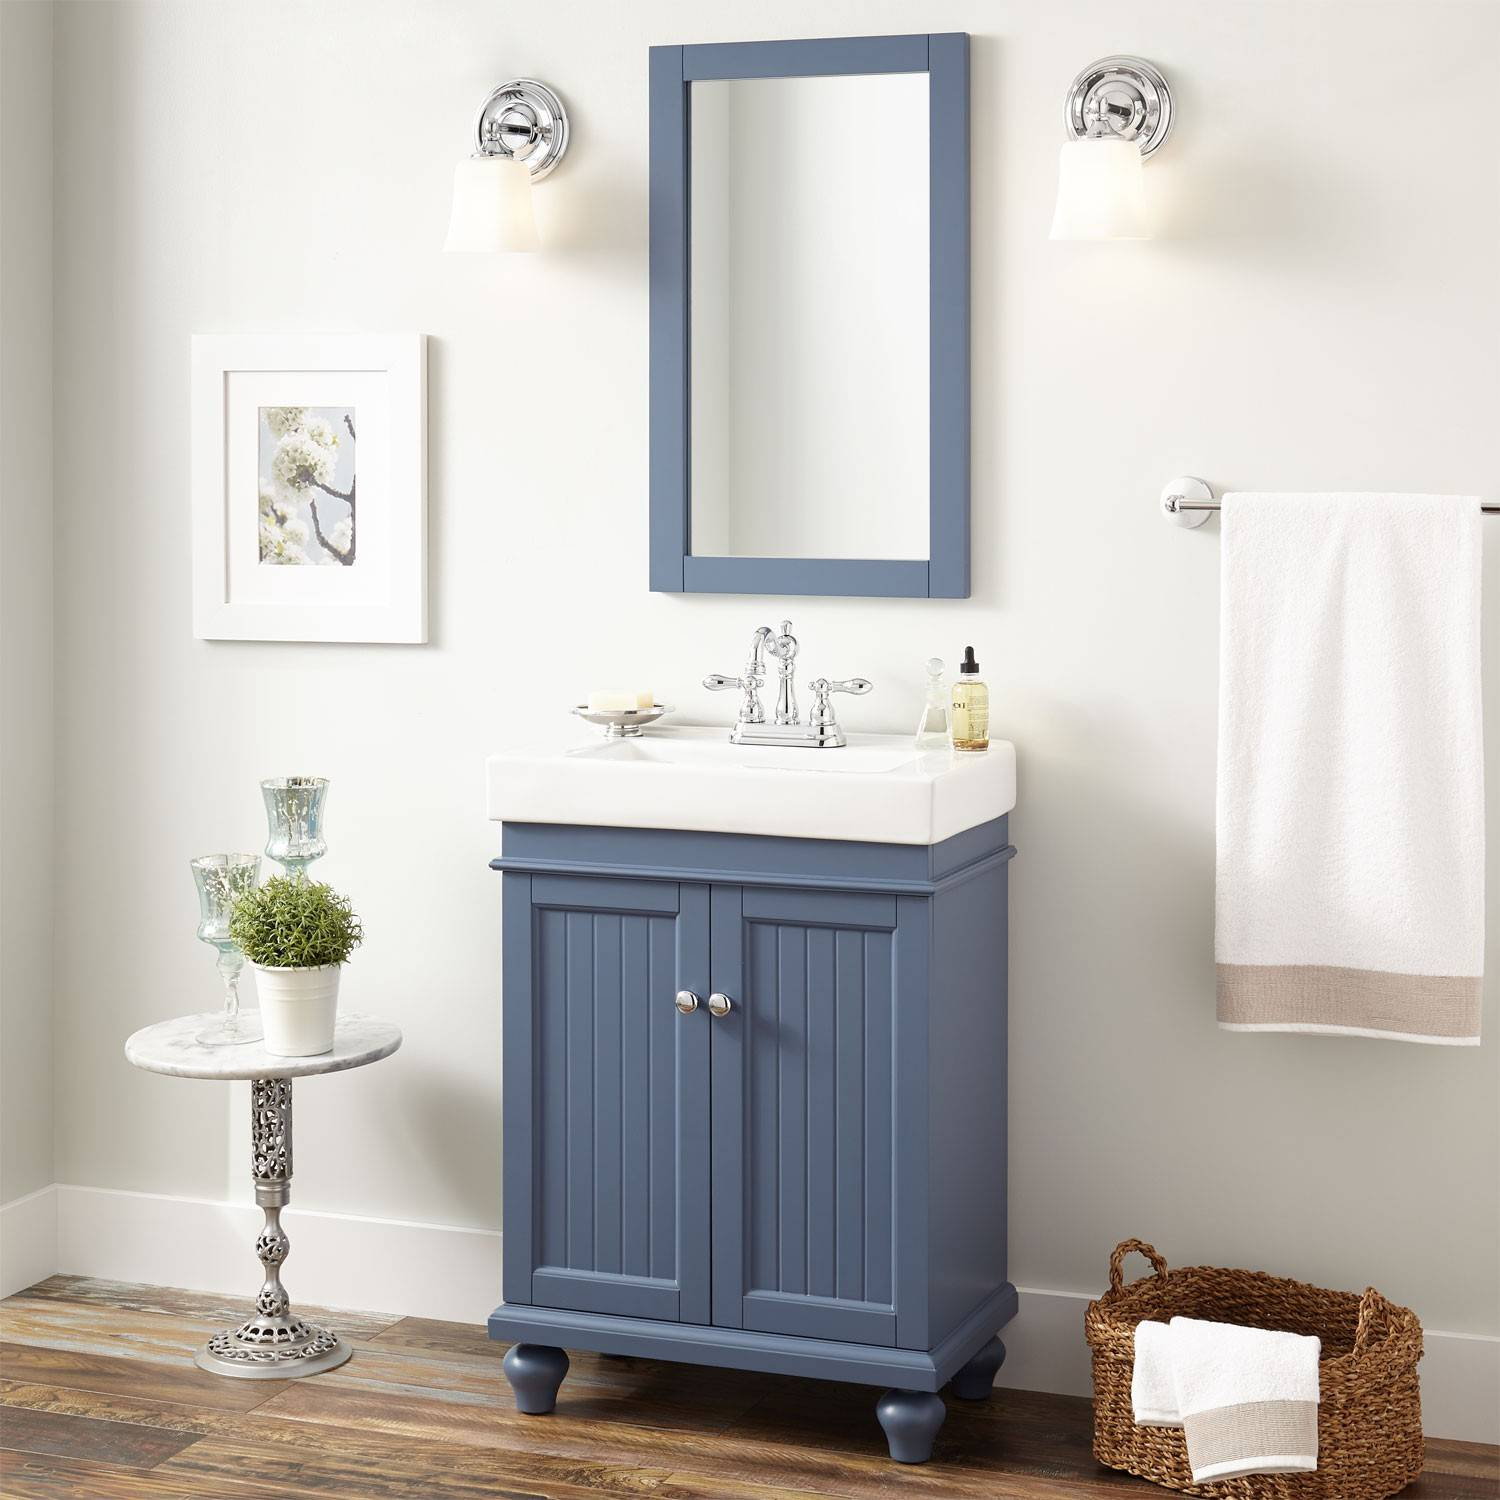 Inspirational Home Designs : Blue Bathroom Vanity Lovelyblue Bathroom Vanity intended for High Quality Blue Bathroom Vanity Cabinet